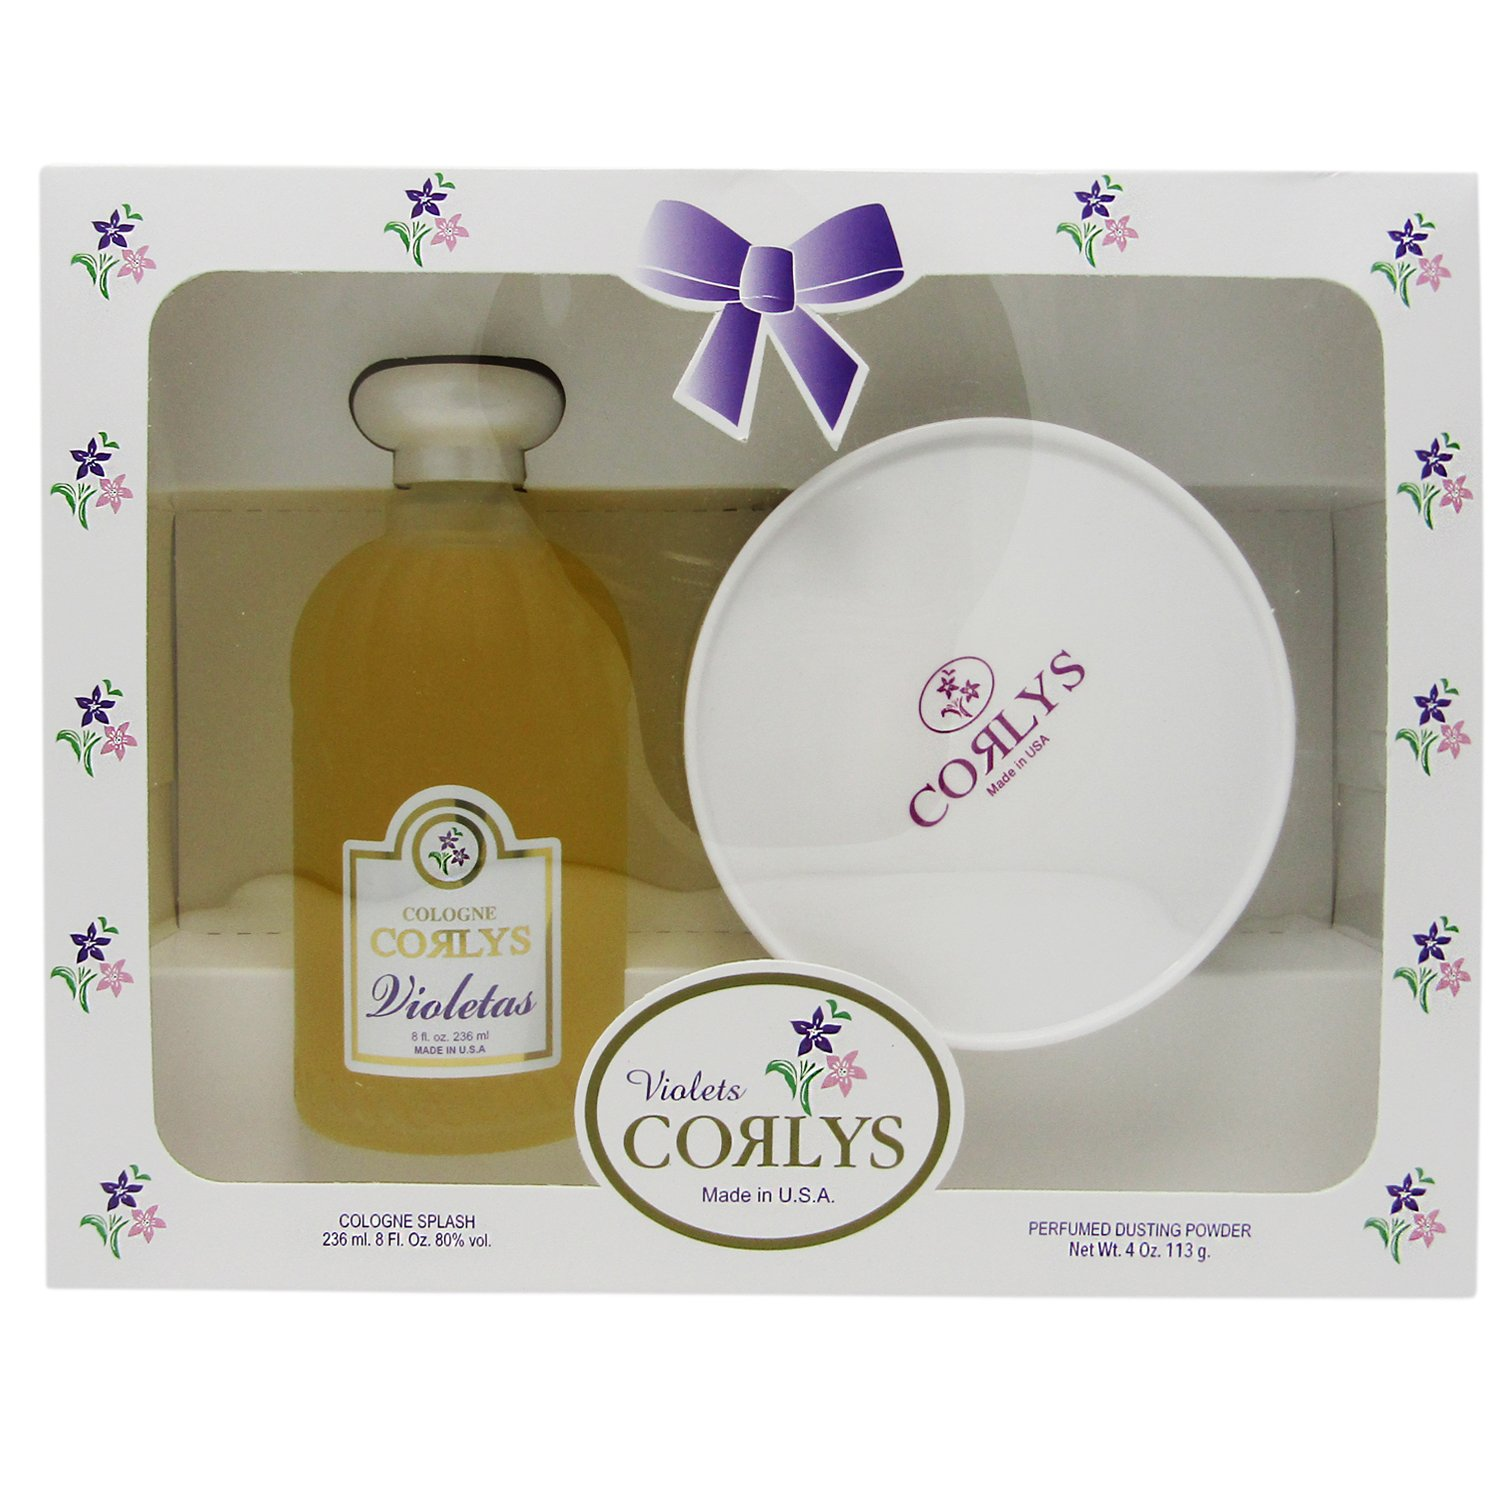 Corlys Violet Baby Cologne and Perfumed Dusting Powder